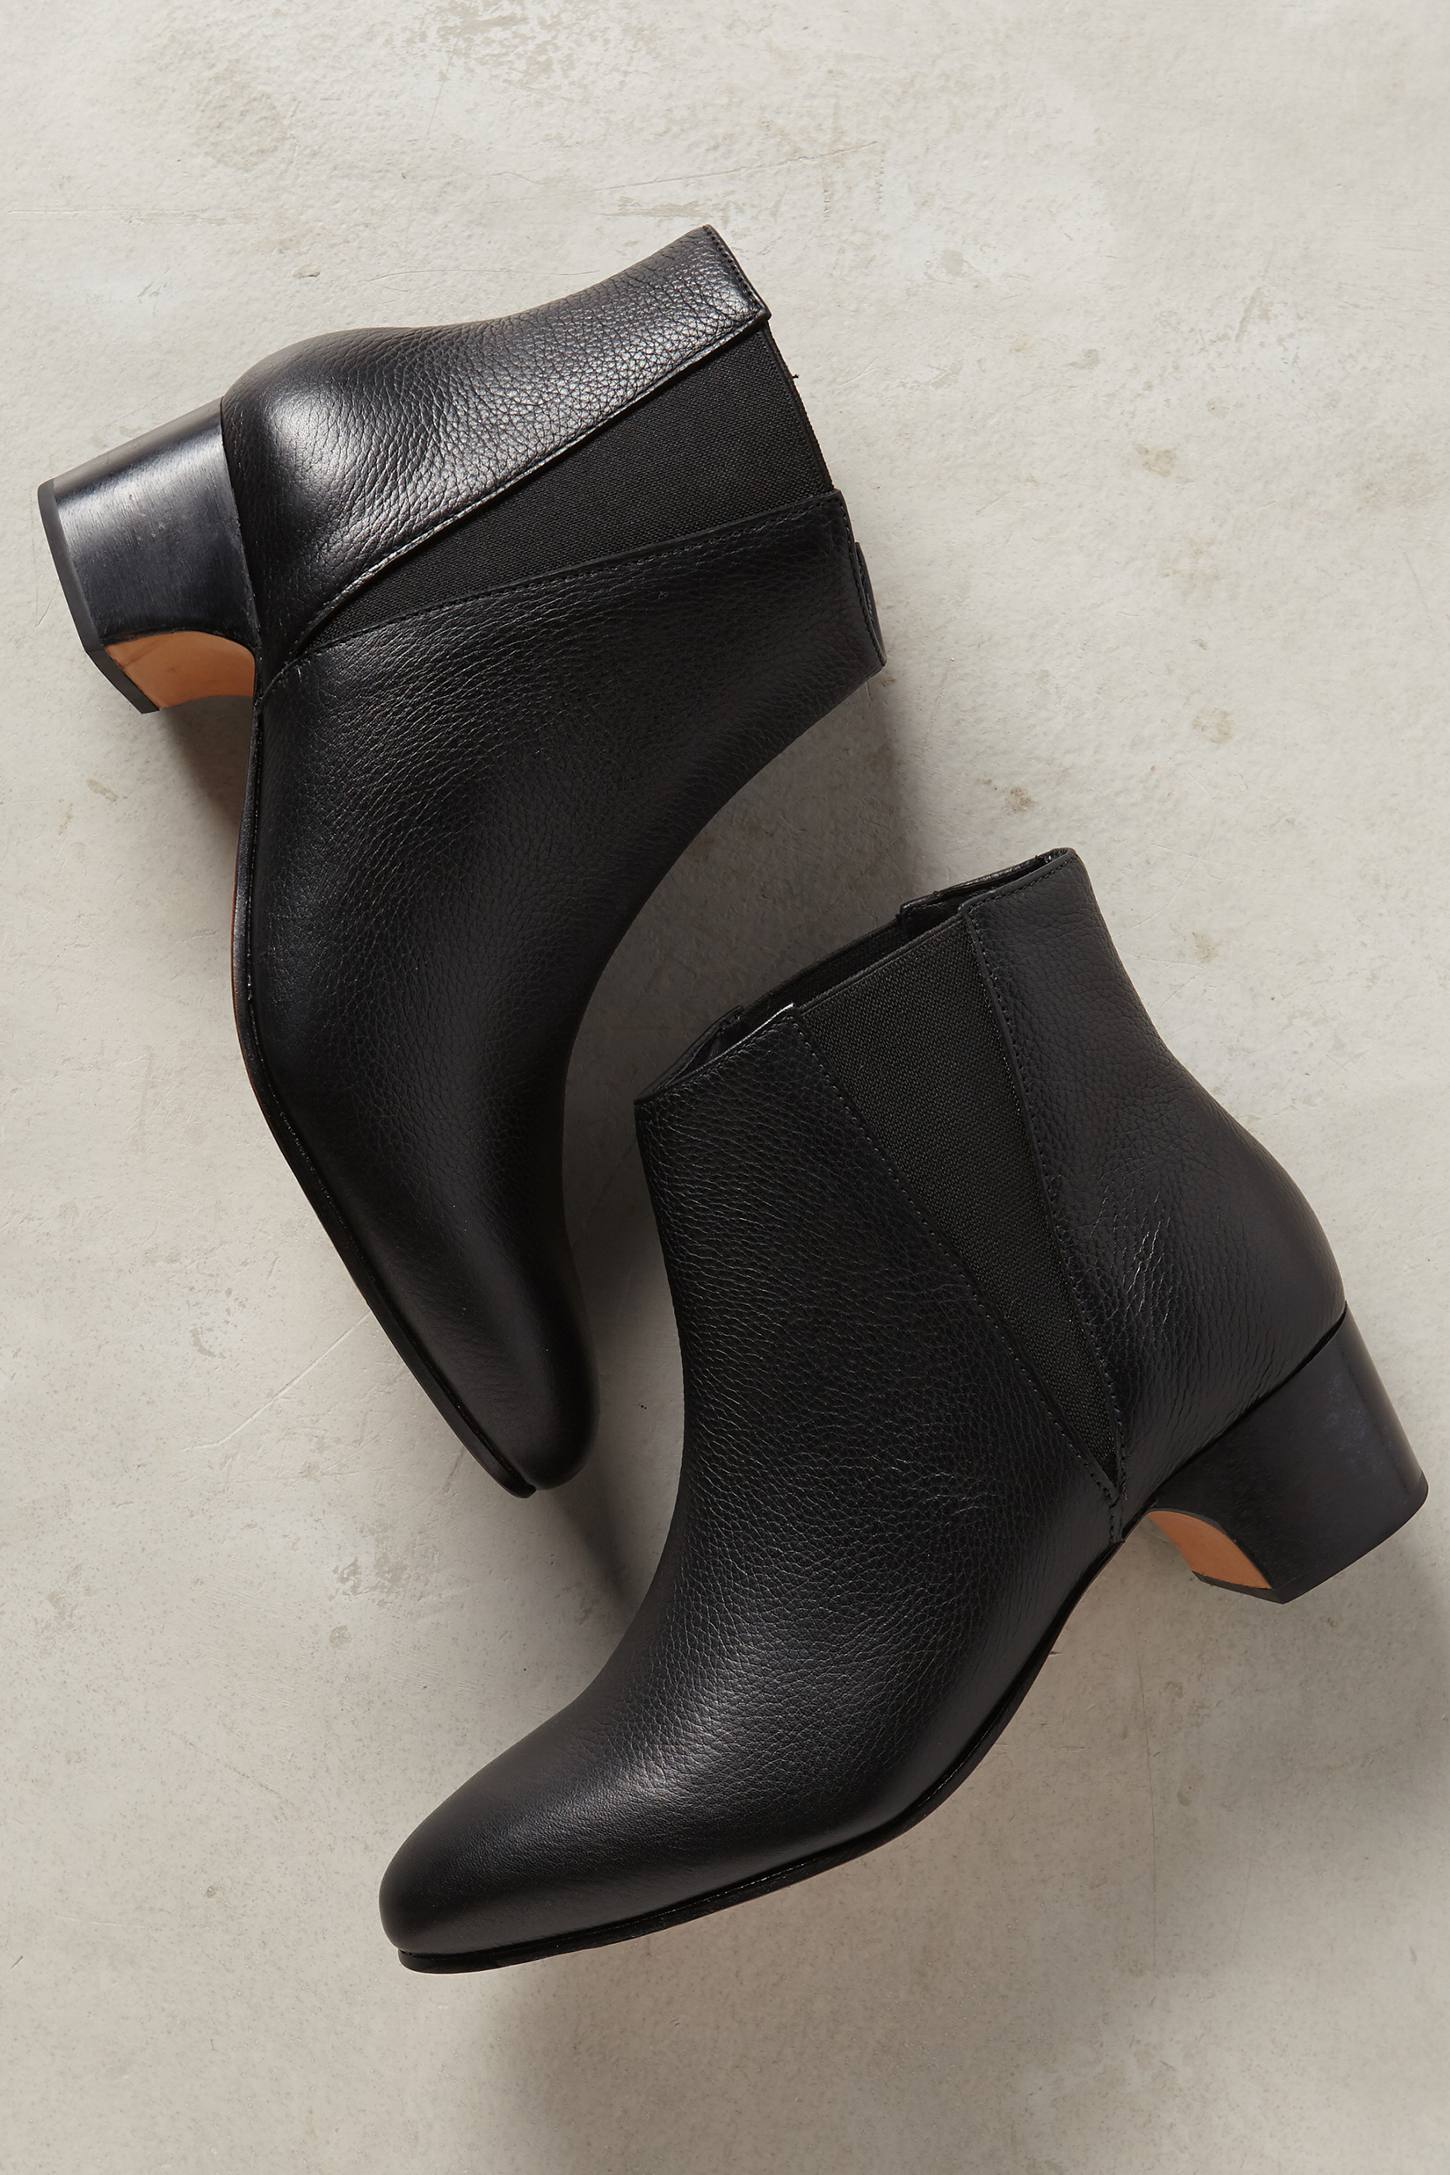 Rachel Comey Archer Booties